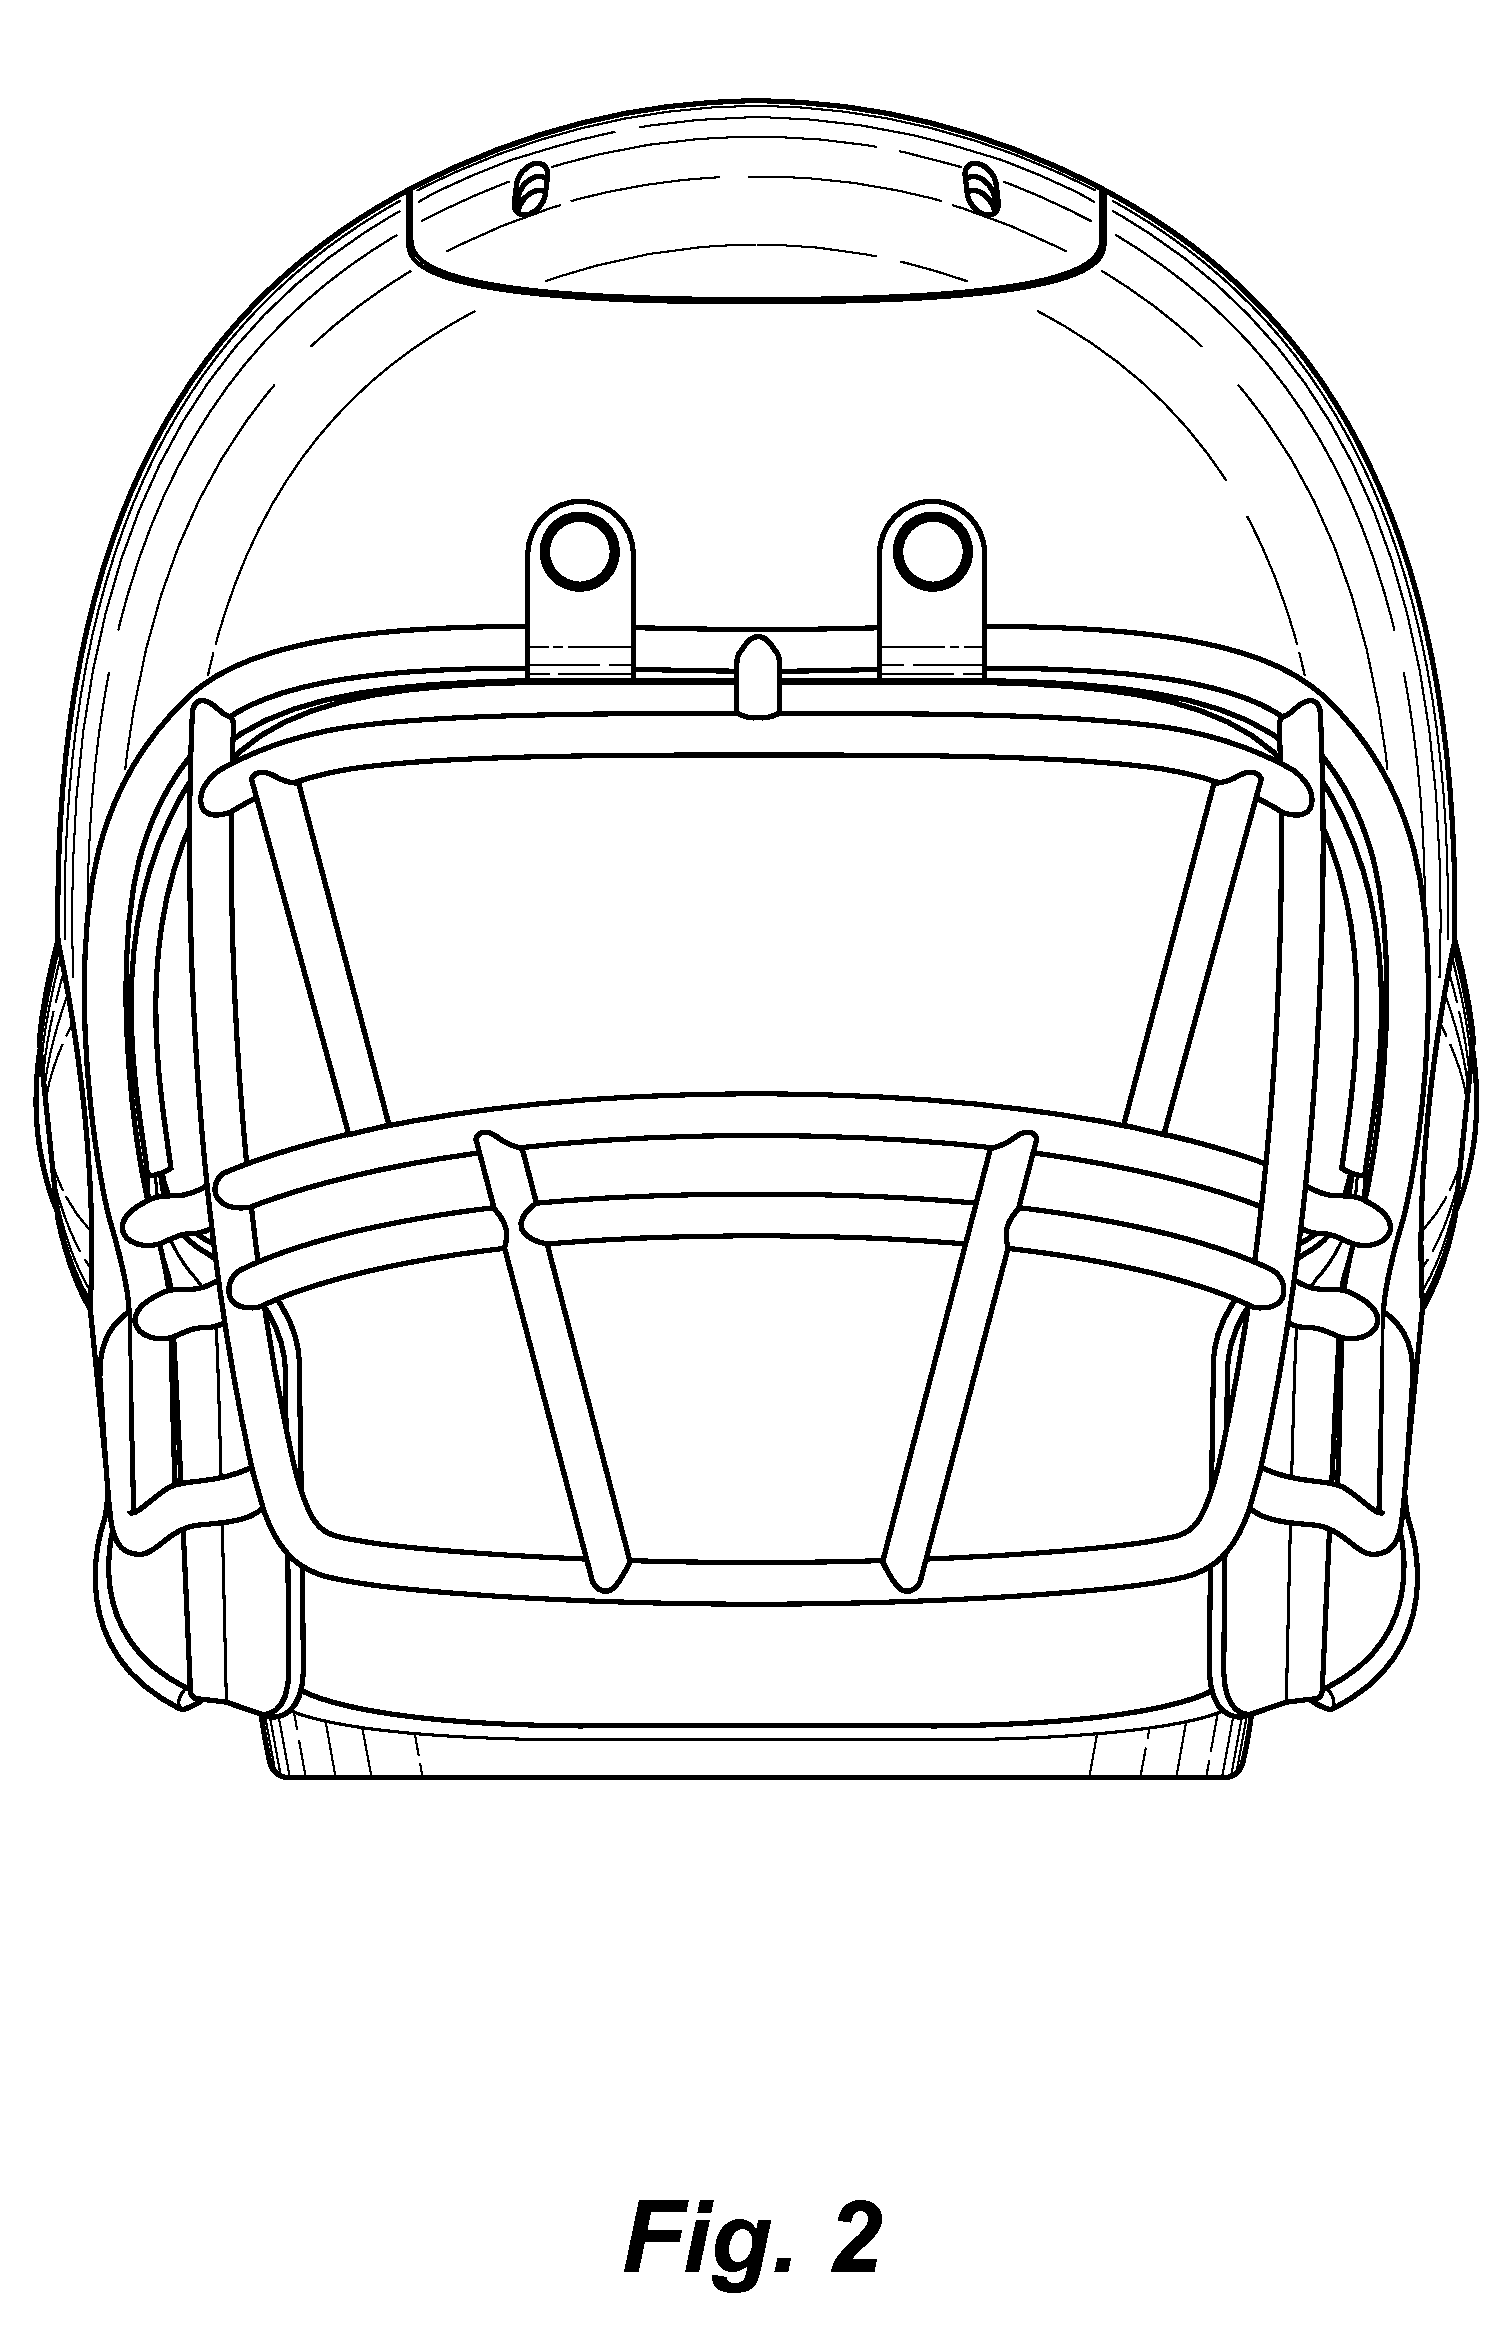 Front helmet outline clipart svg transparent stock Free Football Helmet Drawings, Download Free Clip Art, Free Clip Art ... svg transparent stock